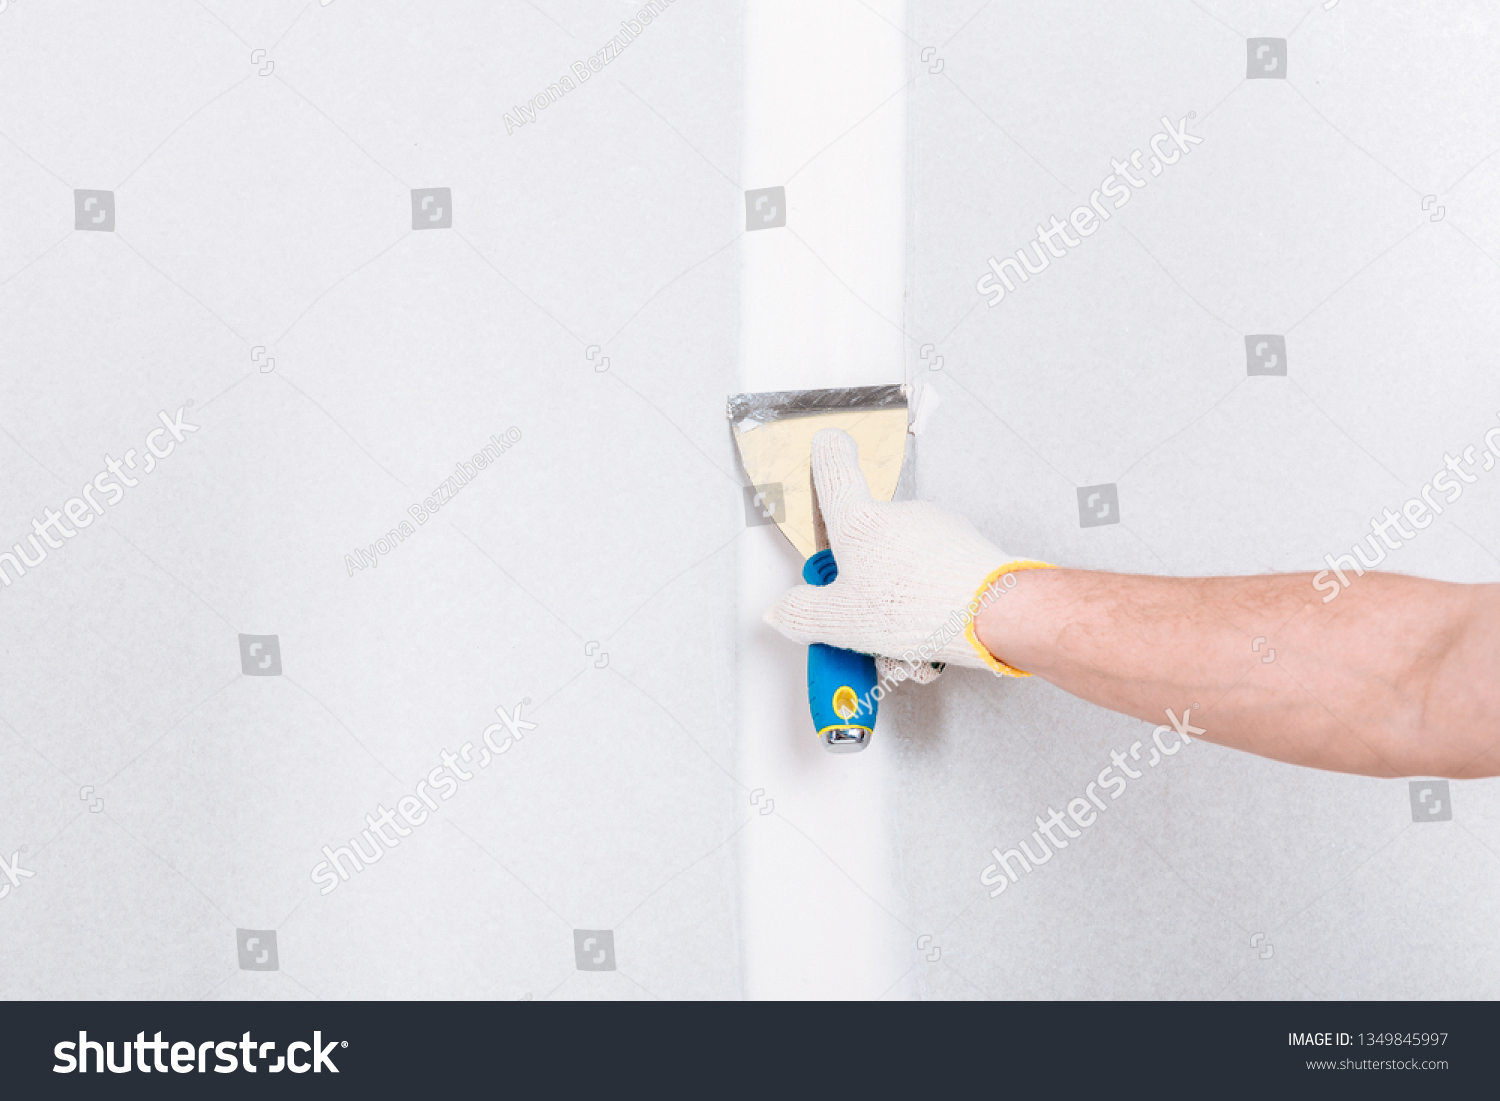 Man with putty knife shows how to hide the connection place between two pieces of dry walls using putty and construction tape #1349845997